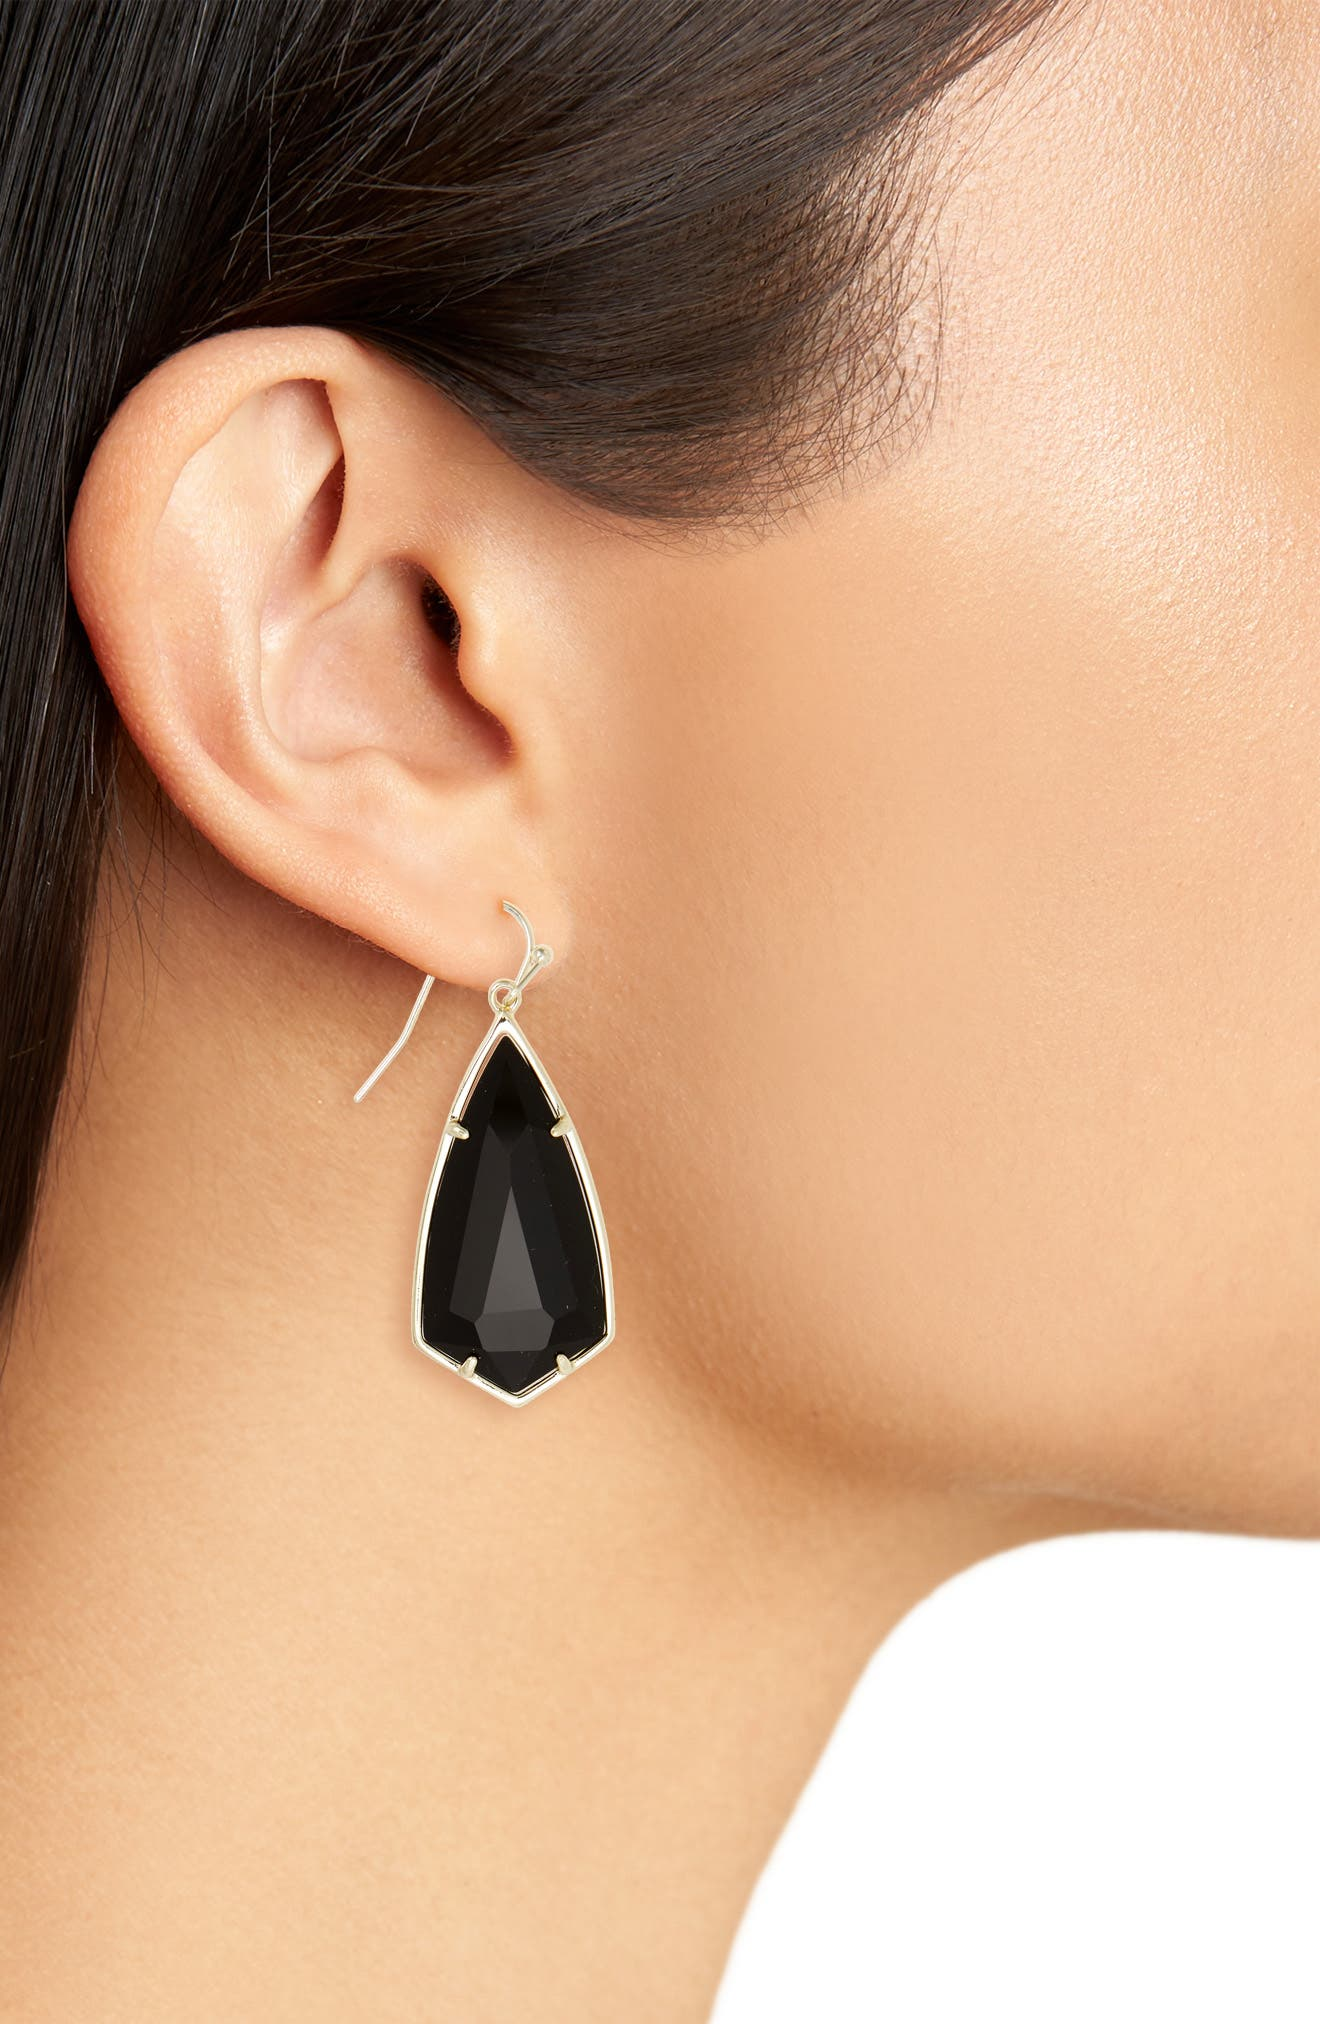 Carla Semiprecious Stone Drop Earrings,                             Alternate thumbnail 2, color,                             003